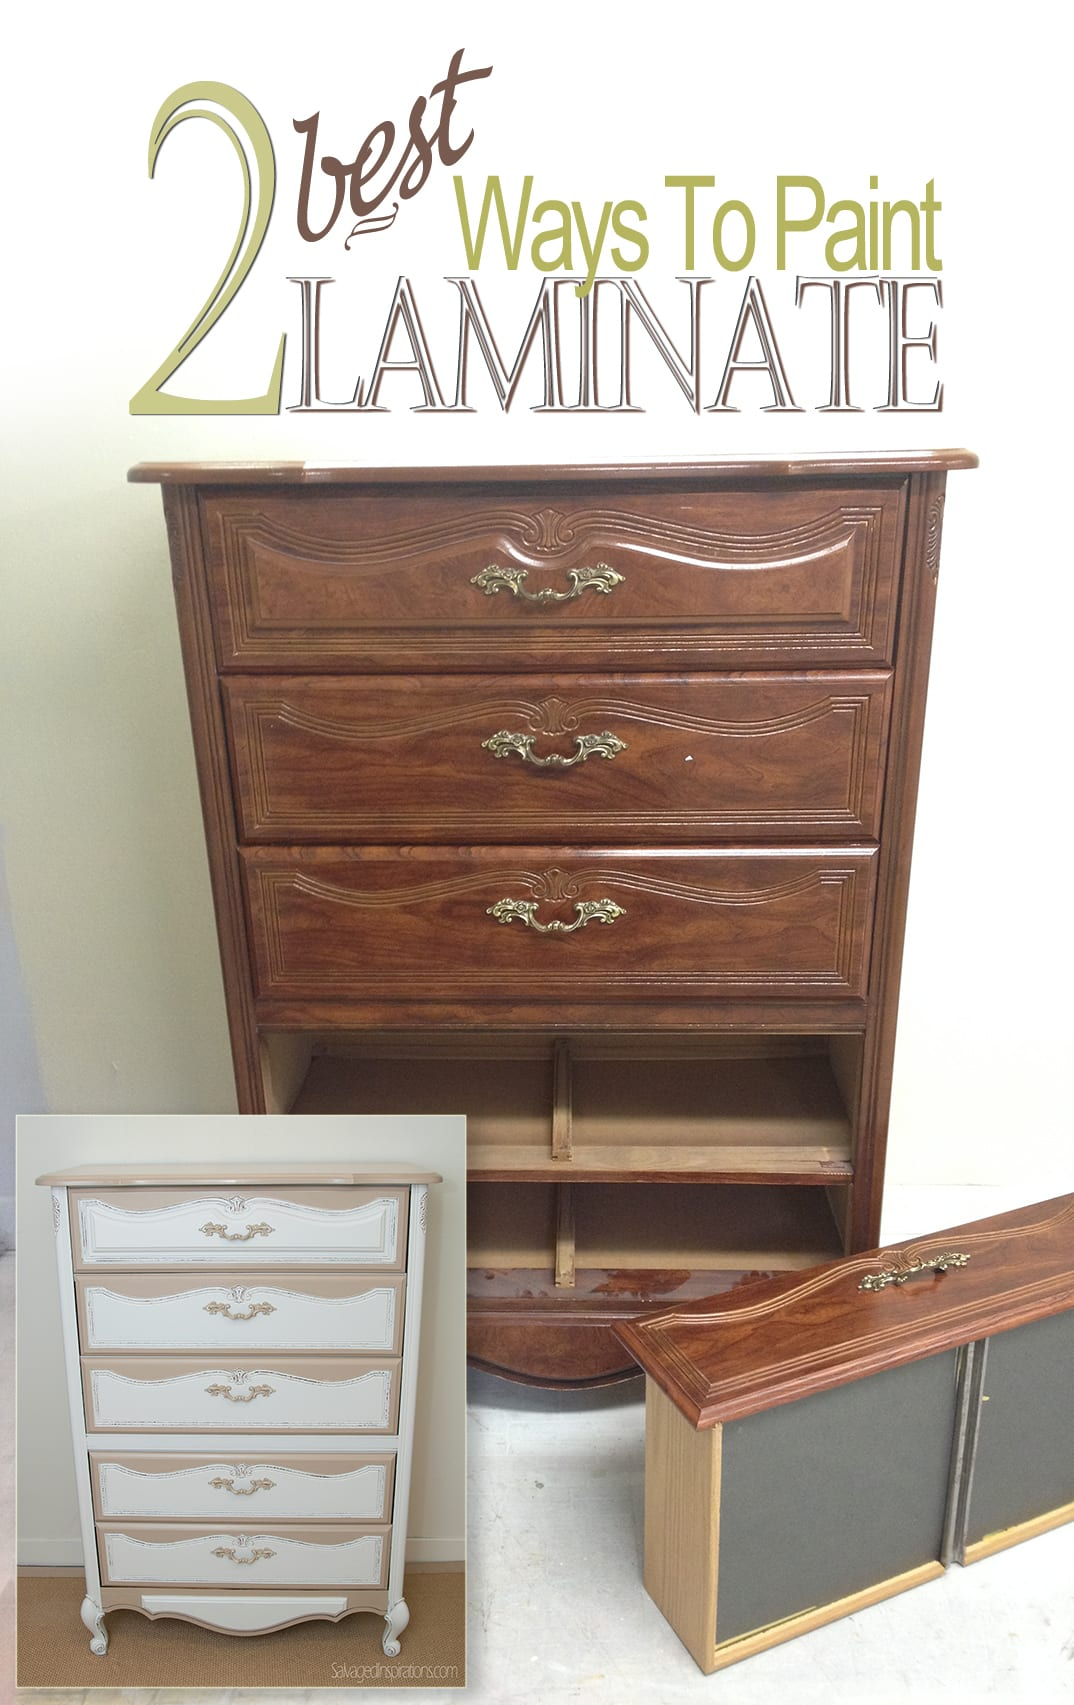 Excellent 2 Best Ways To Paint Laminate Furniture Salvaged Inspirations Interior Design Ideas Jittwwsoteloinfo